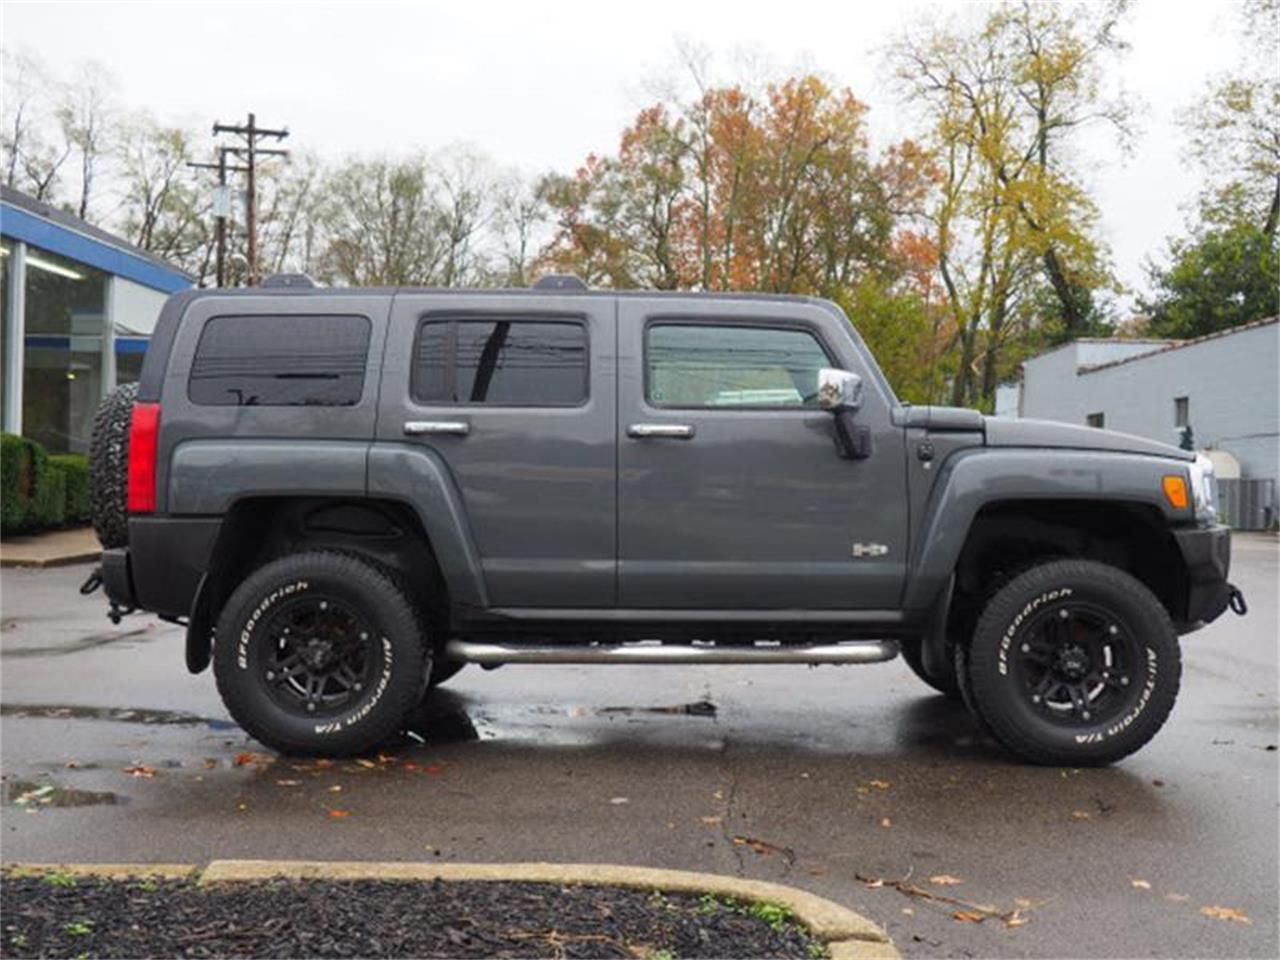 For Sale: 10 Hummer H10 in Loveland, Ohio | 08 hummer h3